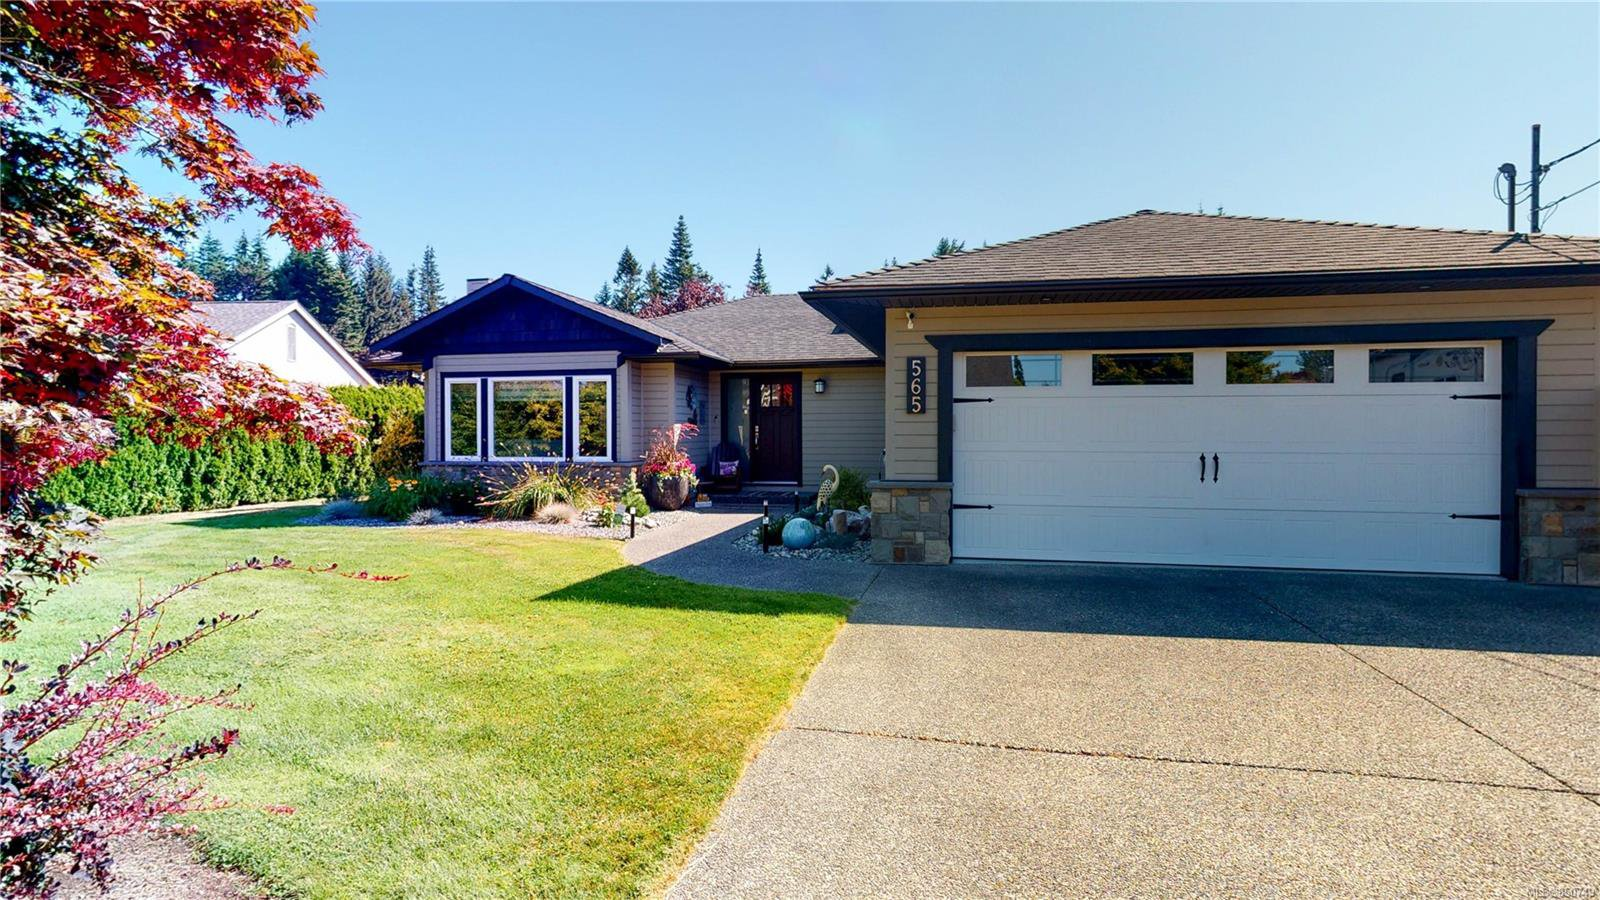 Main Photo: 565 Hawthorne Rise in : PQ French Creek House for sale (Parksville/Qualicum)  : MLS®# 850749